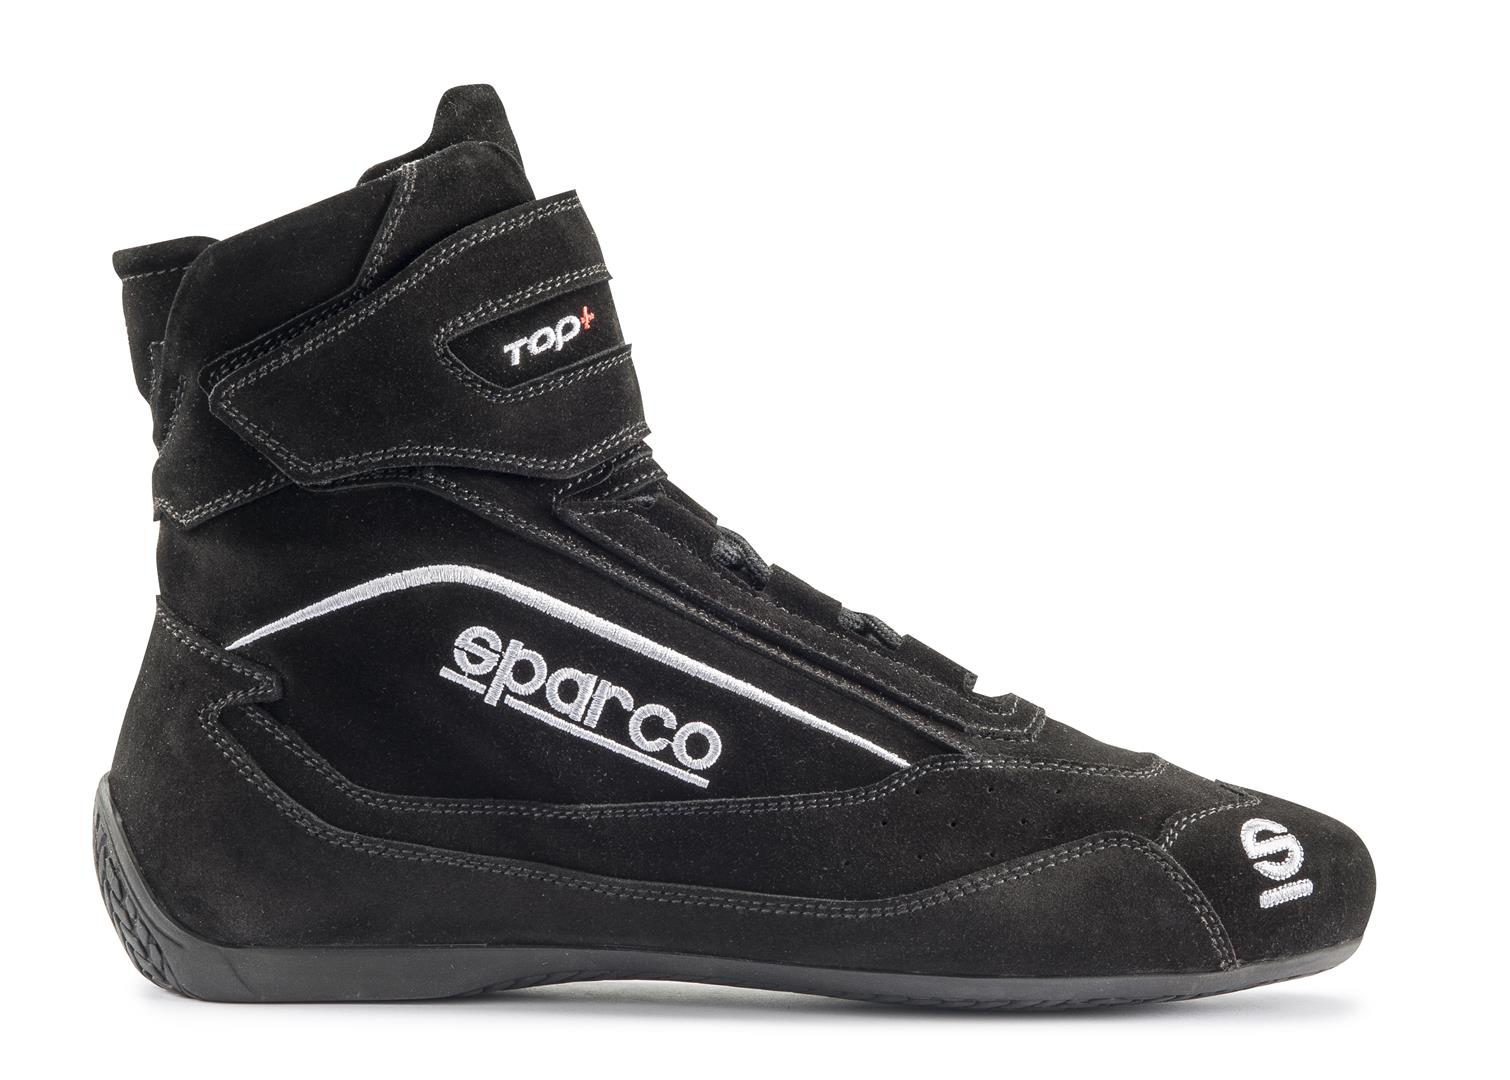 Sparco Black Top+ SH-5 Driving Shoes EU 43 | US 9 - 00121043NR